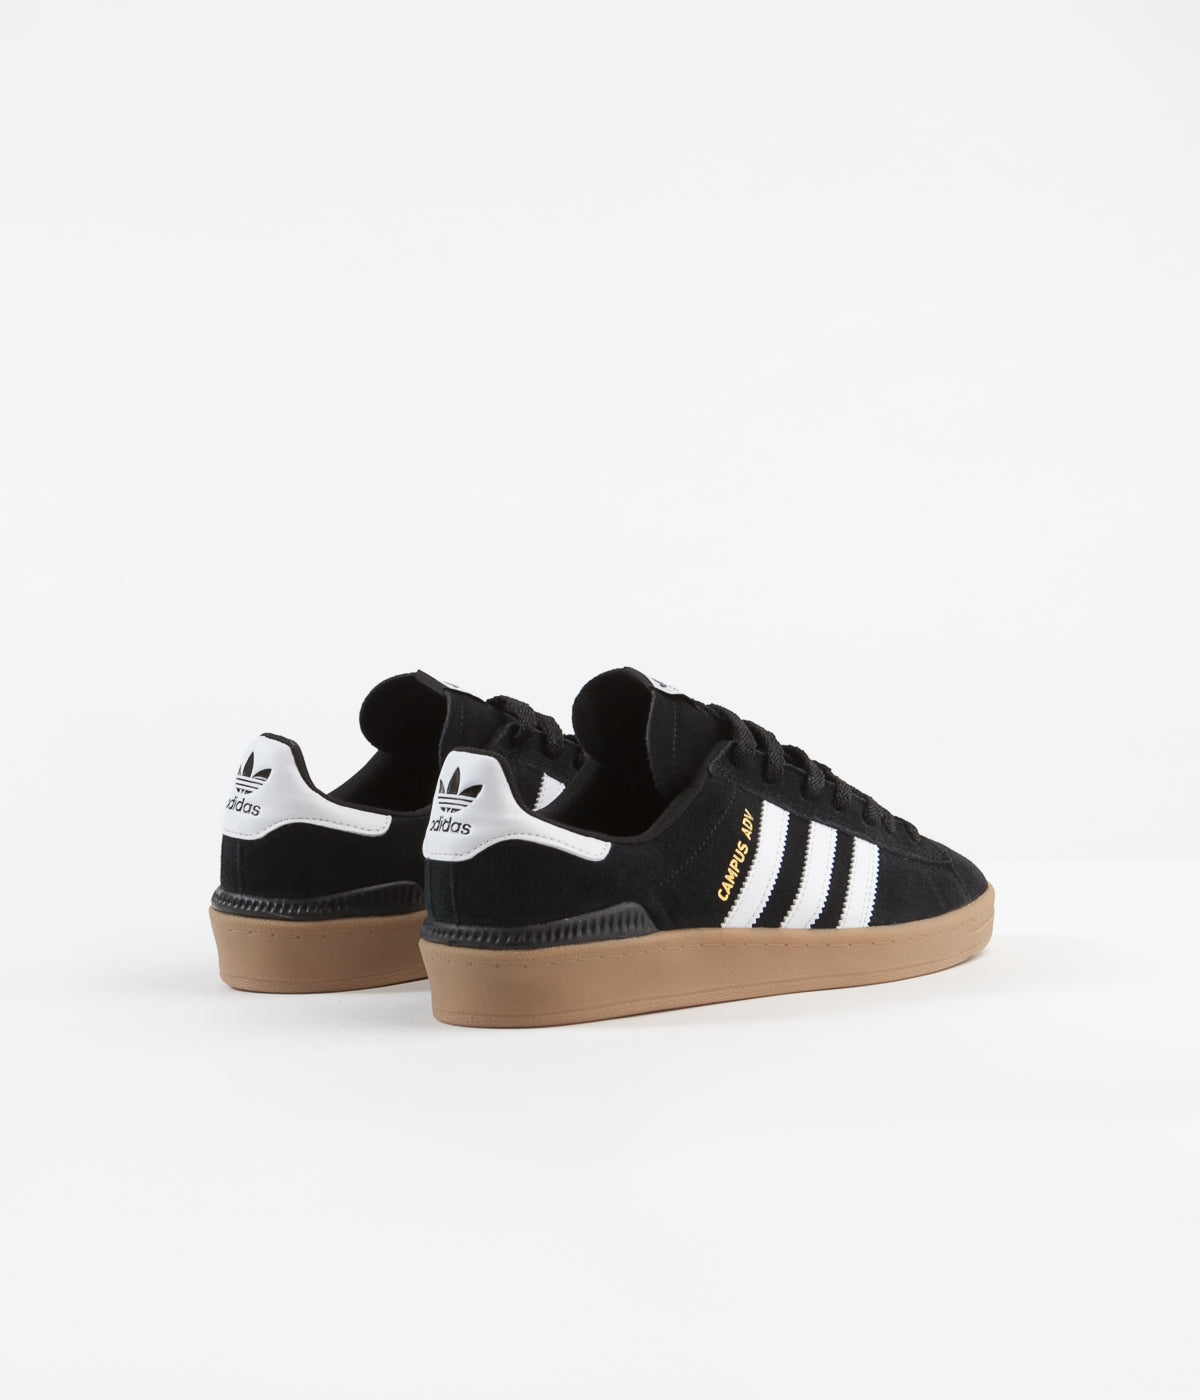 b1f55483a76ff Adidas Campus Adv Shoes - Core Black / White / Gum4 | Flatspot